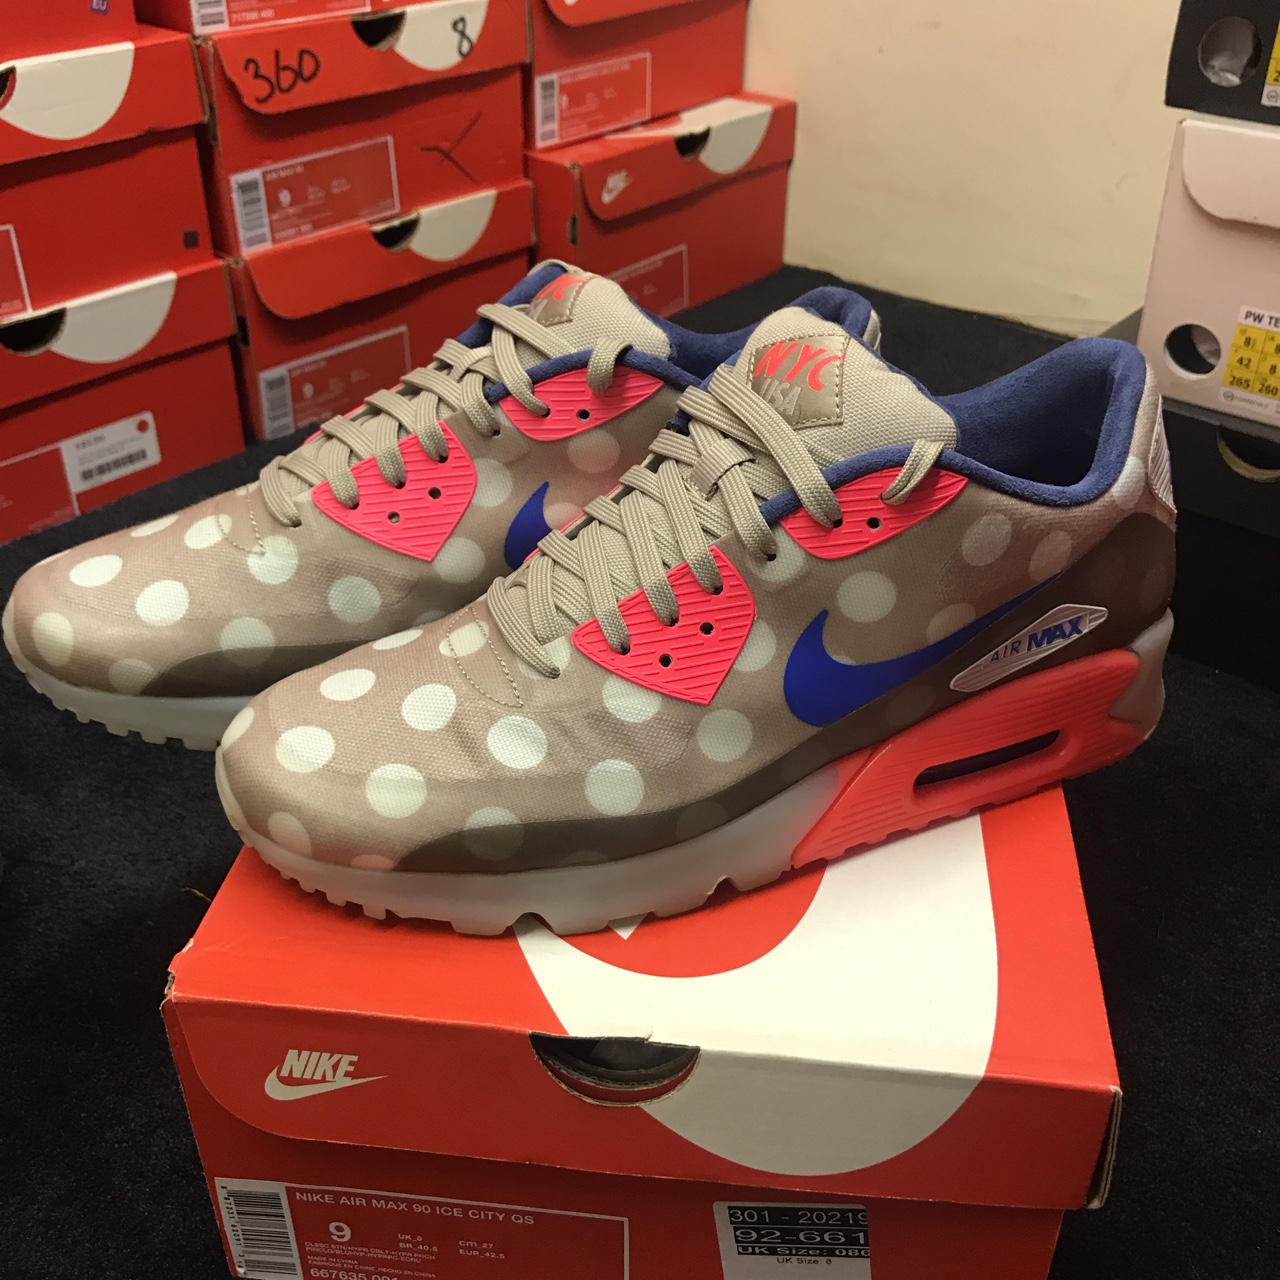 Nike Air Max 90 Ice City QS Size UK 8 Worn once in Depop